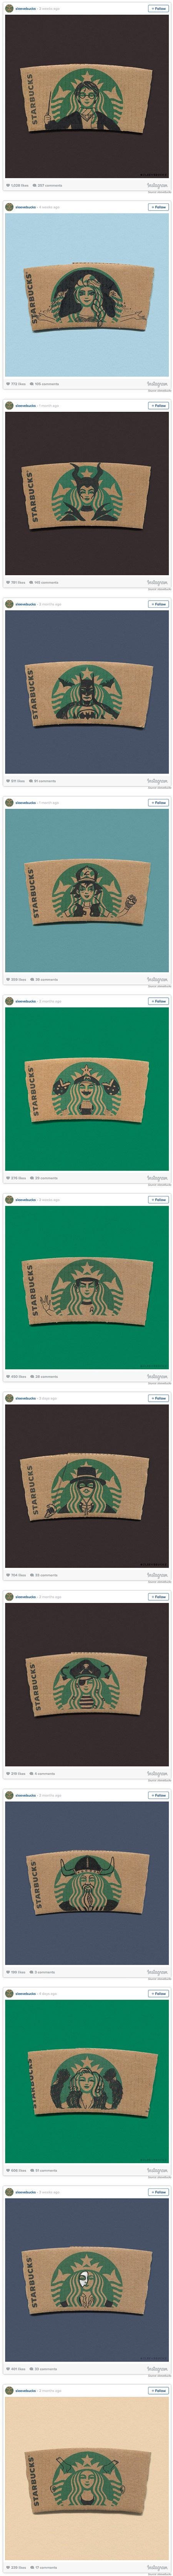 Starbucks Sleeves Get An Upgrade With Pop Culture Doodles.